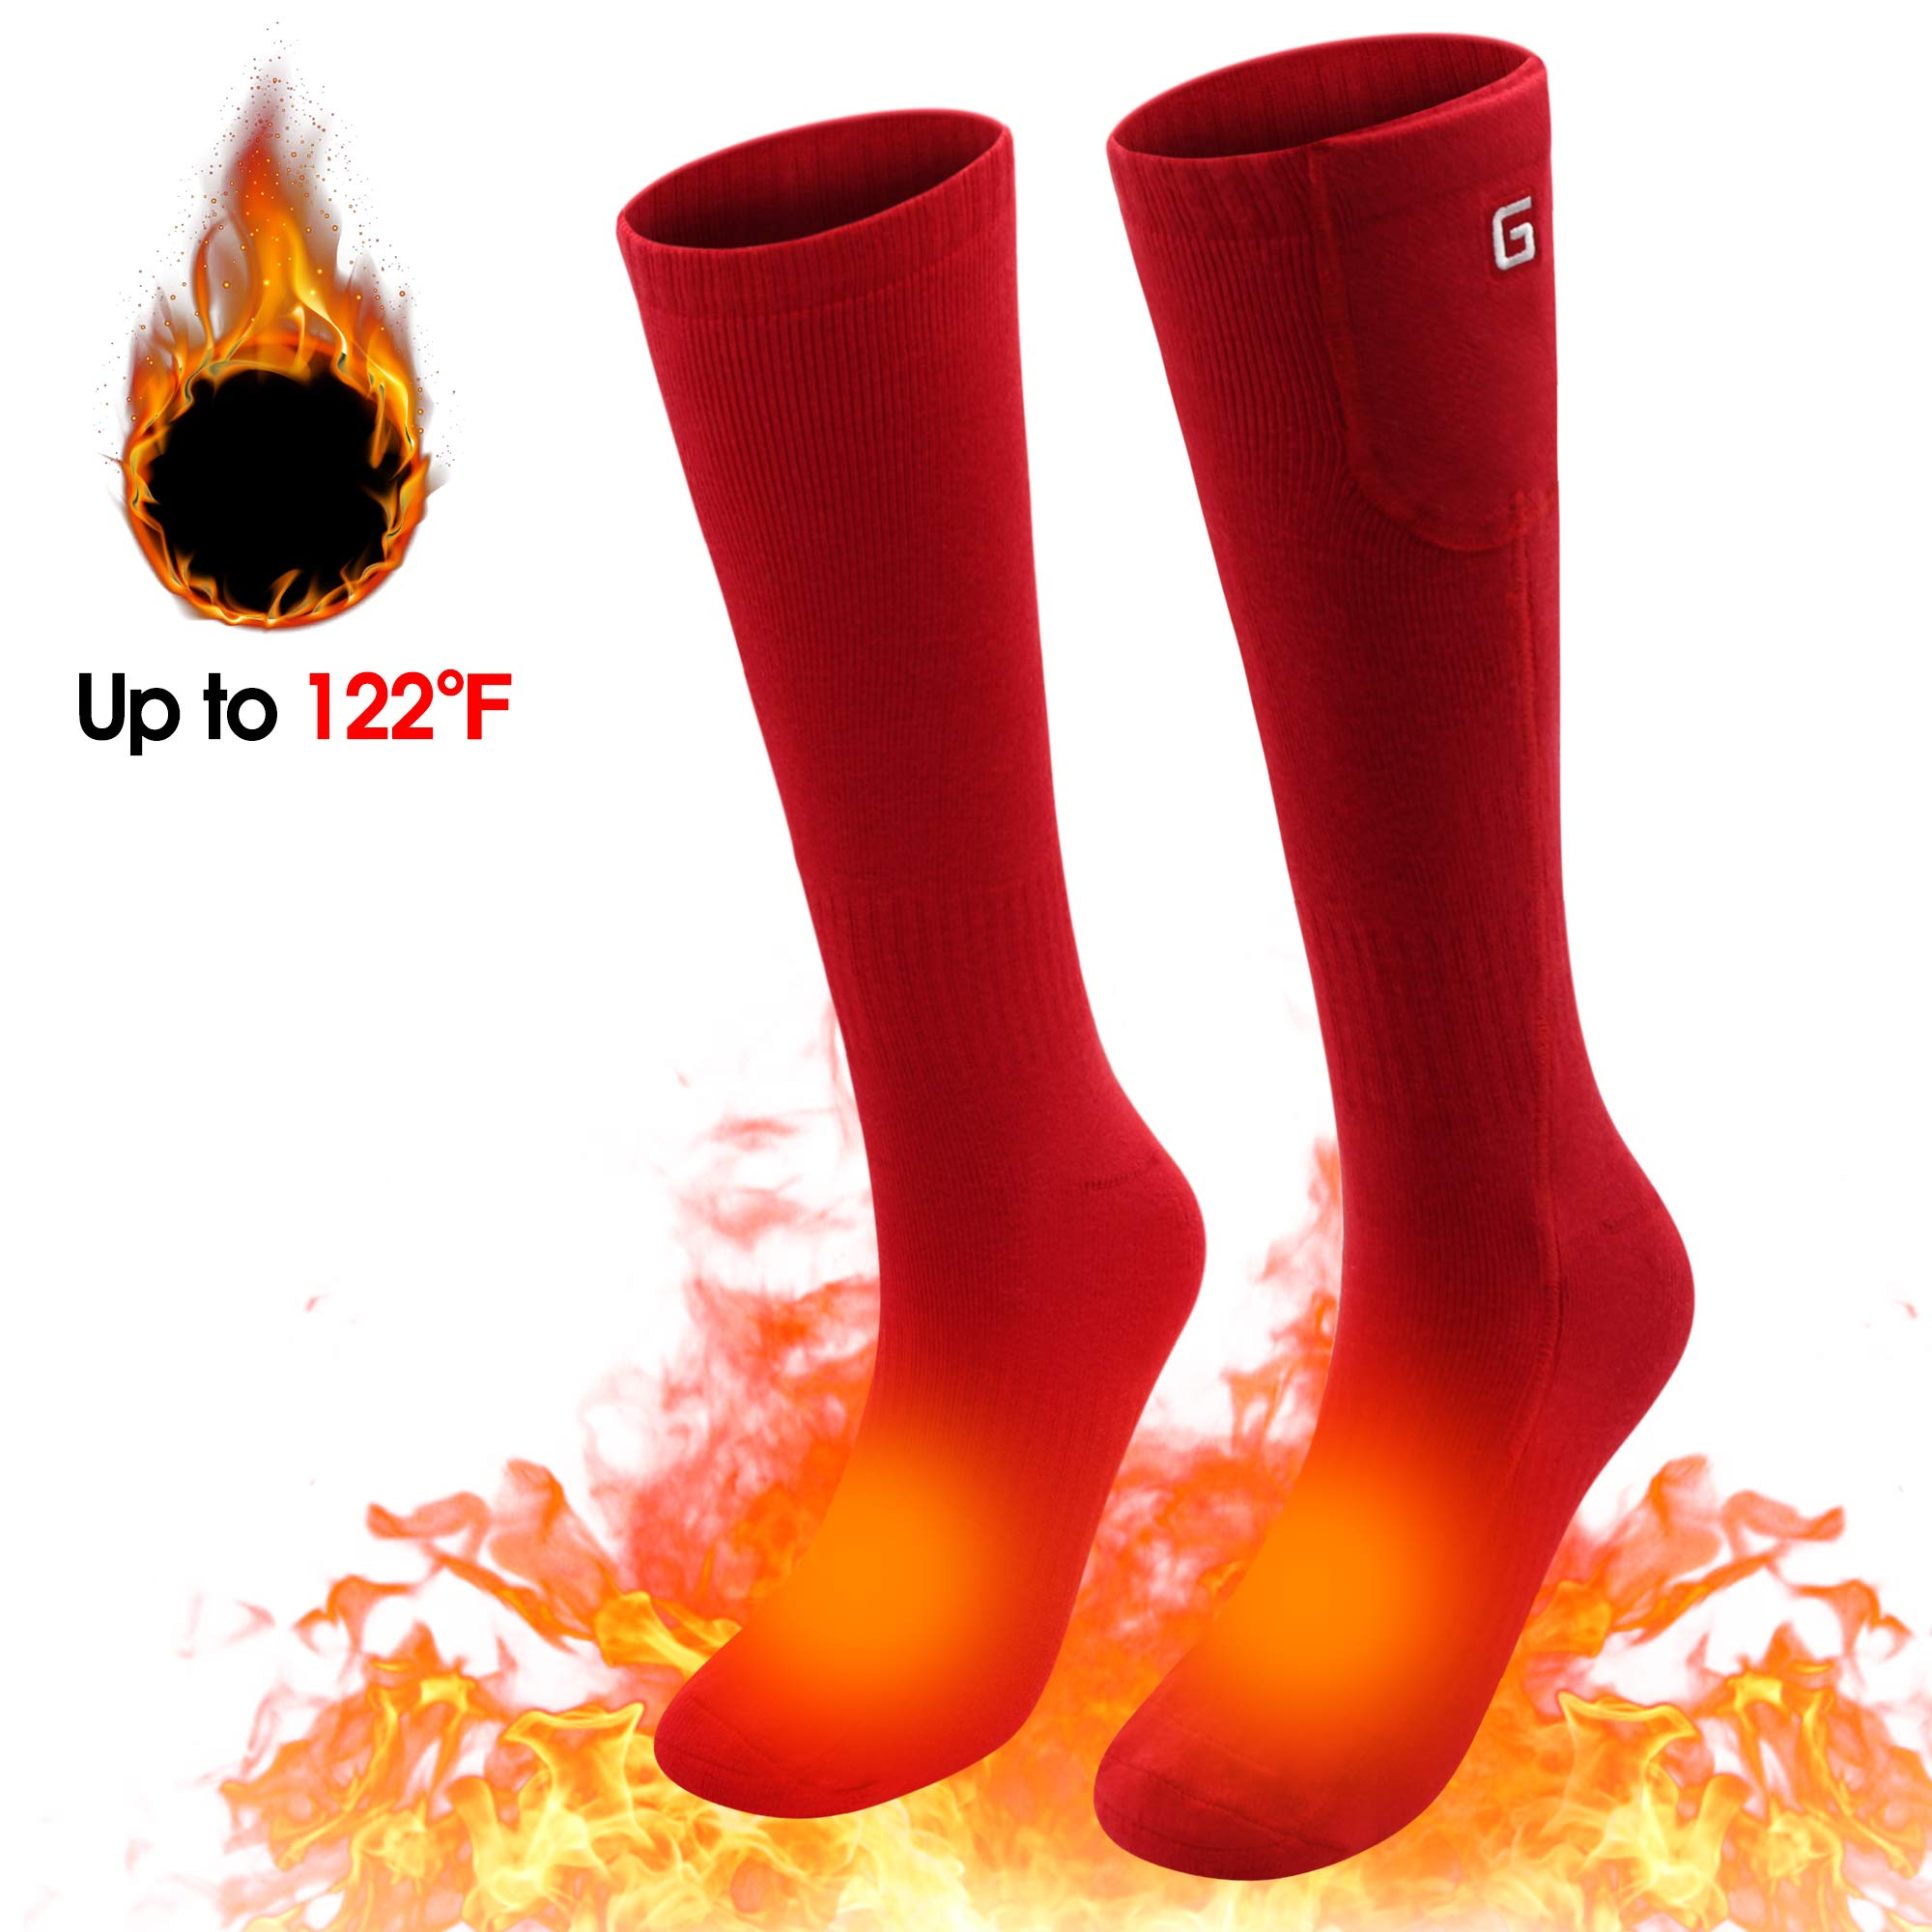 Spring Heated Socks,3.7V 2200MAH Electric Rechargeable Battery Heating Socks for Men Women Warm Cotton Socks Foot Warmer Hot Feet (Red) by Unknown